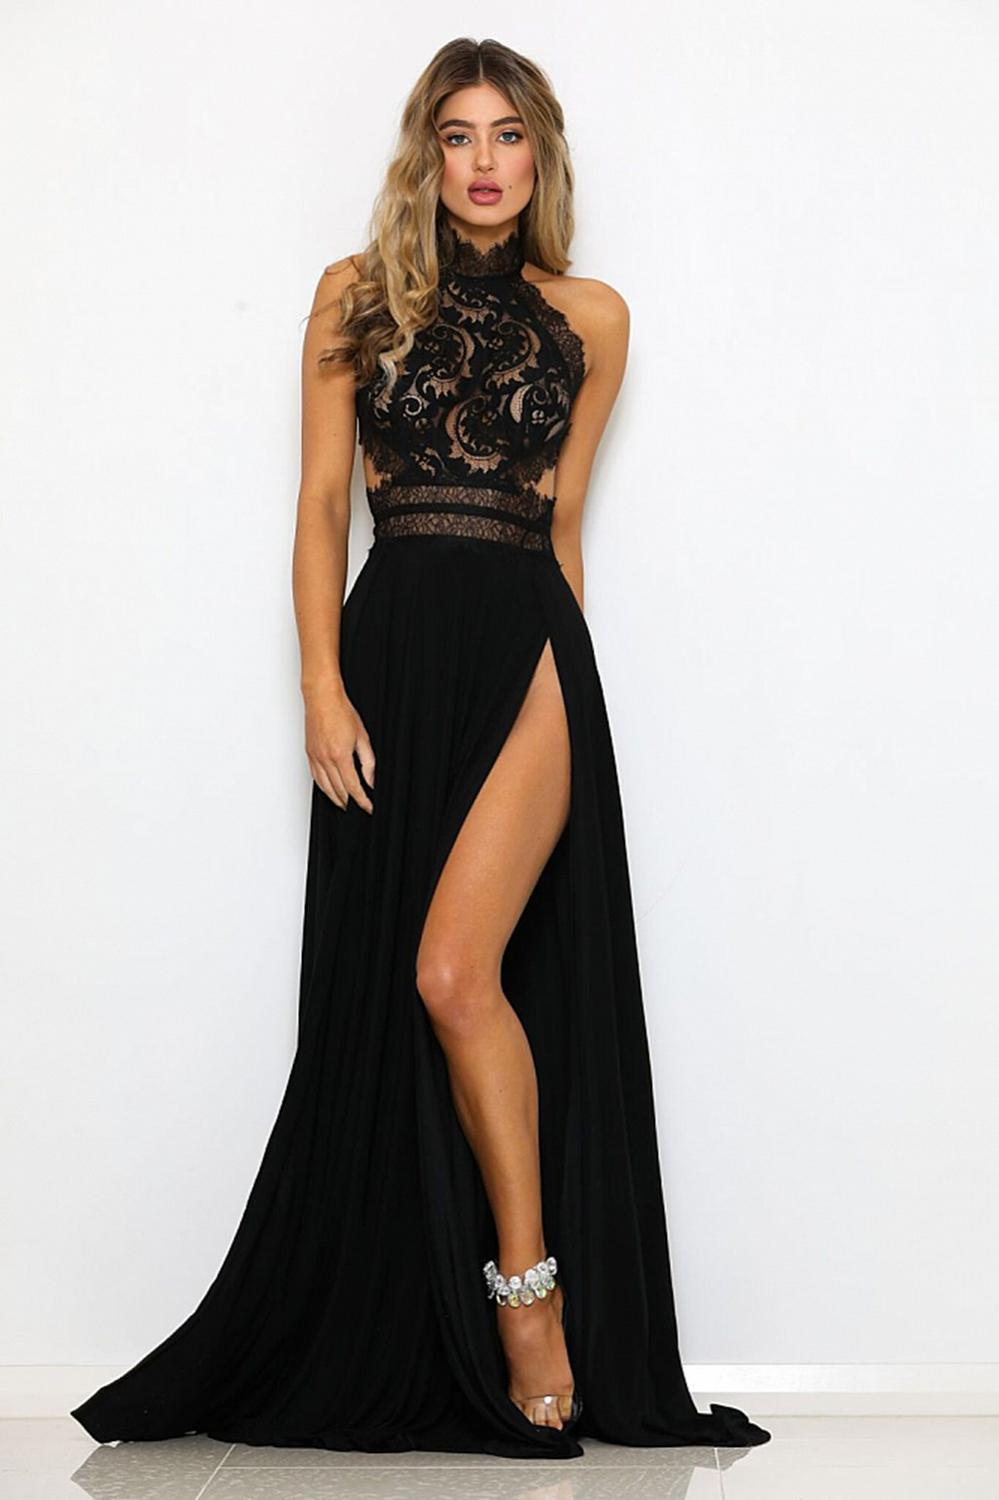 Summer Dinner Dresses For Women Long Party Backless Dress Sexy Lace Formal Dress Elegant Maxi Womens Clothing Plus Size Dresses